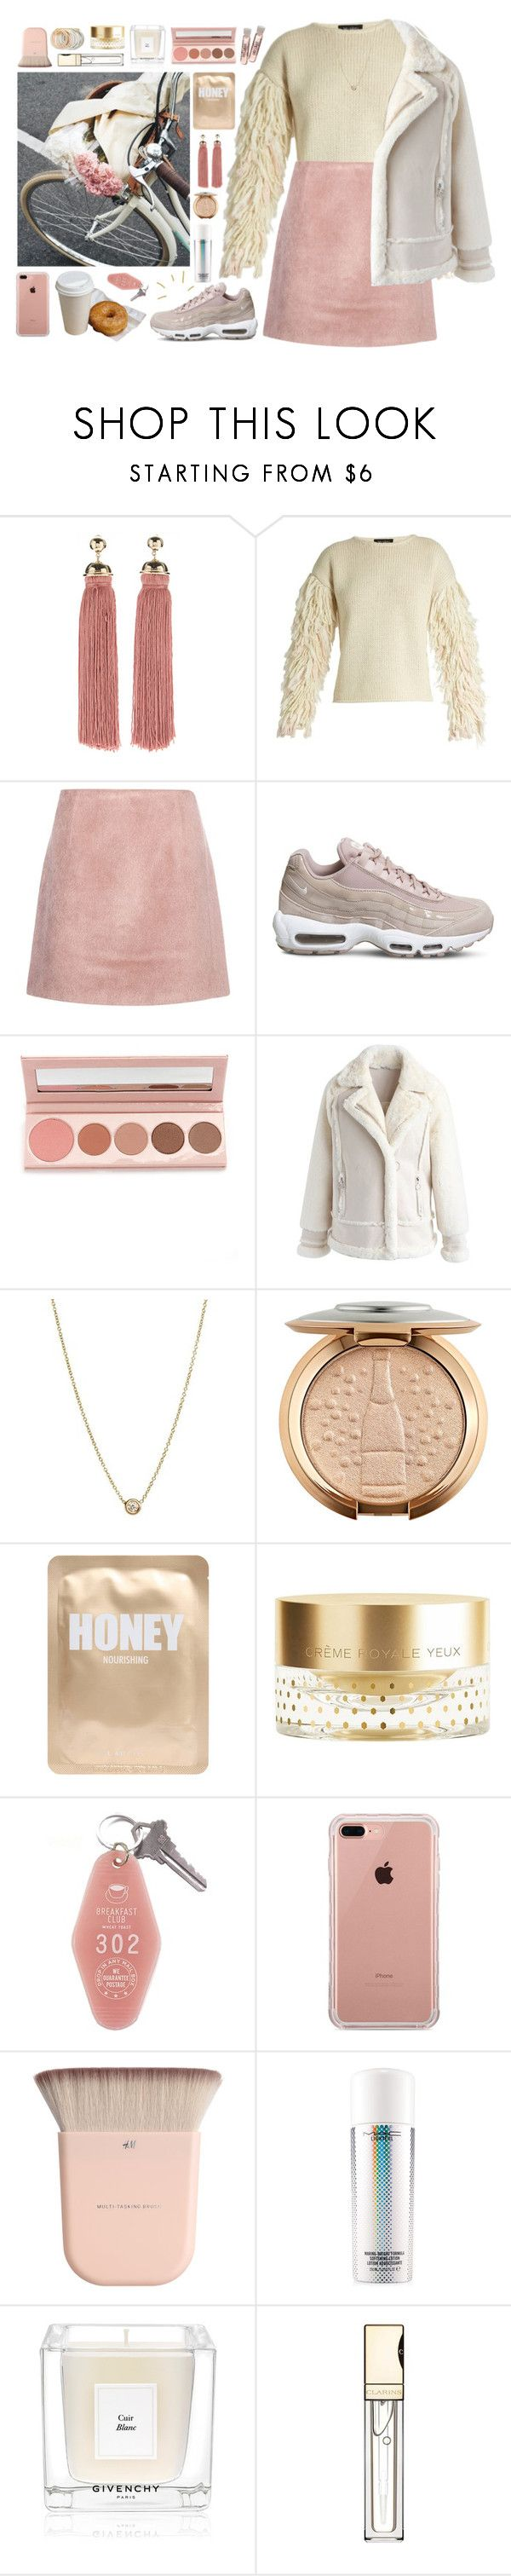 """lots of it"" by s-ensible ❤ liked on Polyvore featuring Tabula Rasa, Acne Studios, NIKE, 100% Pure, Chicwish, ZoÃ« Chicco, Lapcos, Orlane, Belkin and MAC Cosmetics"